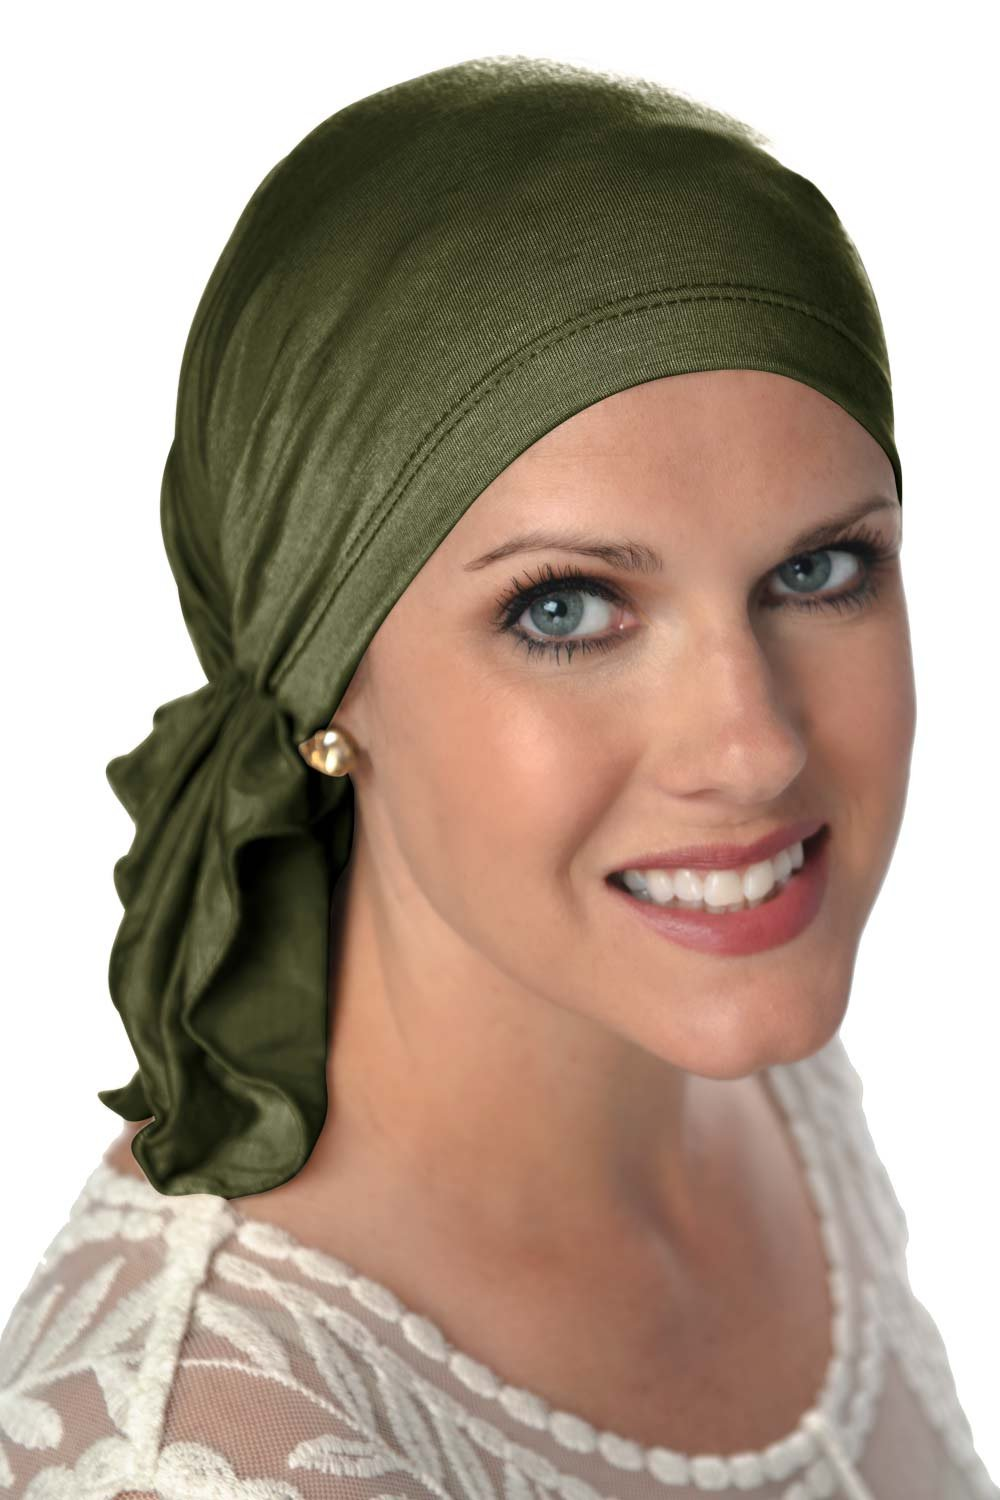 Headcovers Unlimited Slip-On Scarf- Caps for Women with Chemo Cancer Hair Loss Olive SV-70062A-OLV